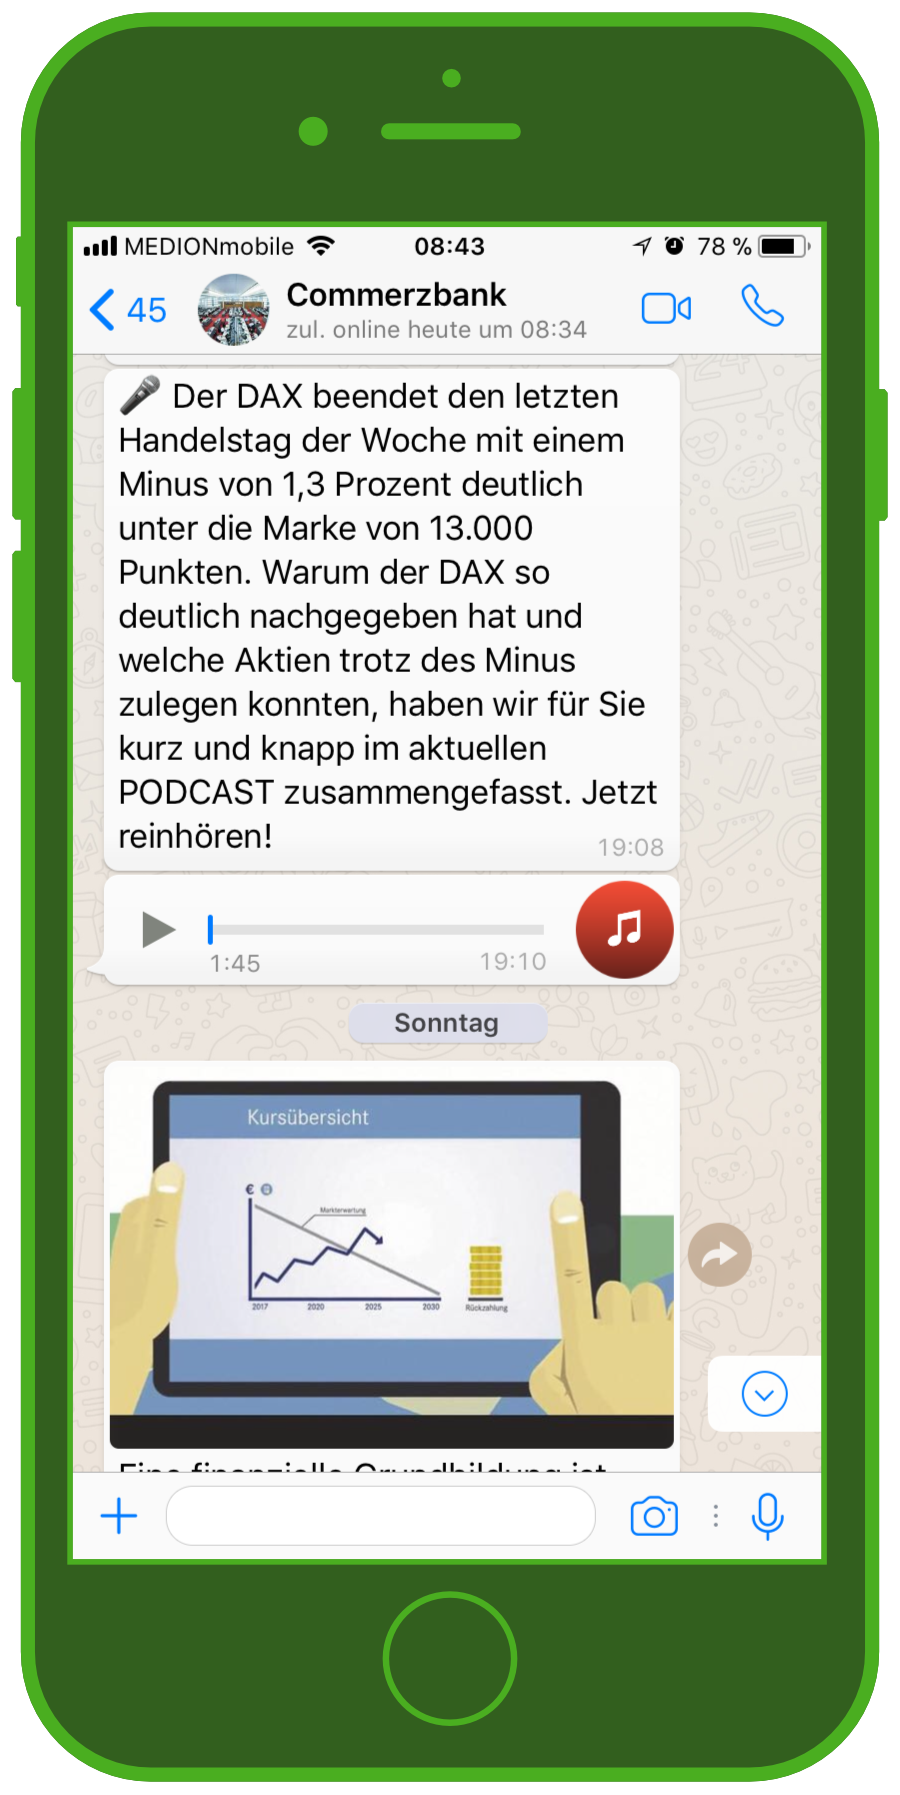 fe96a435fb82 Commerzbank WhatsApp Service: Innovative Messenger Marketing